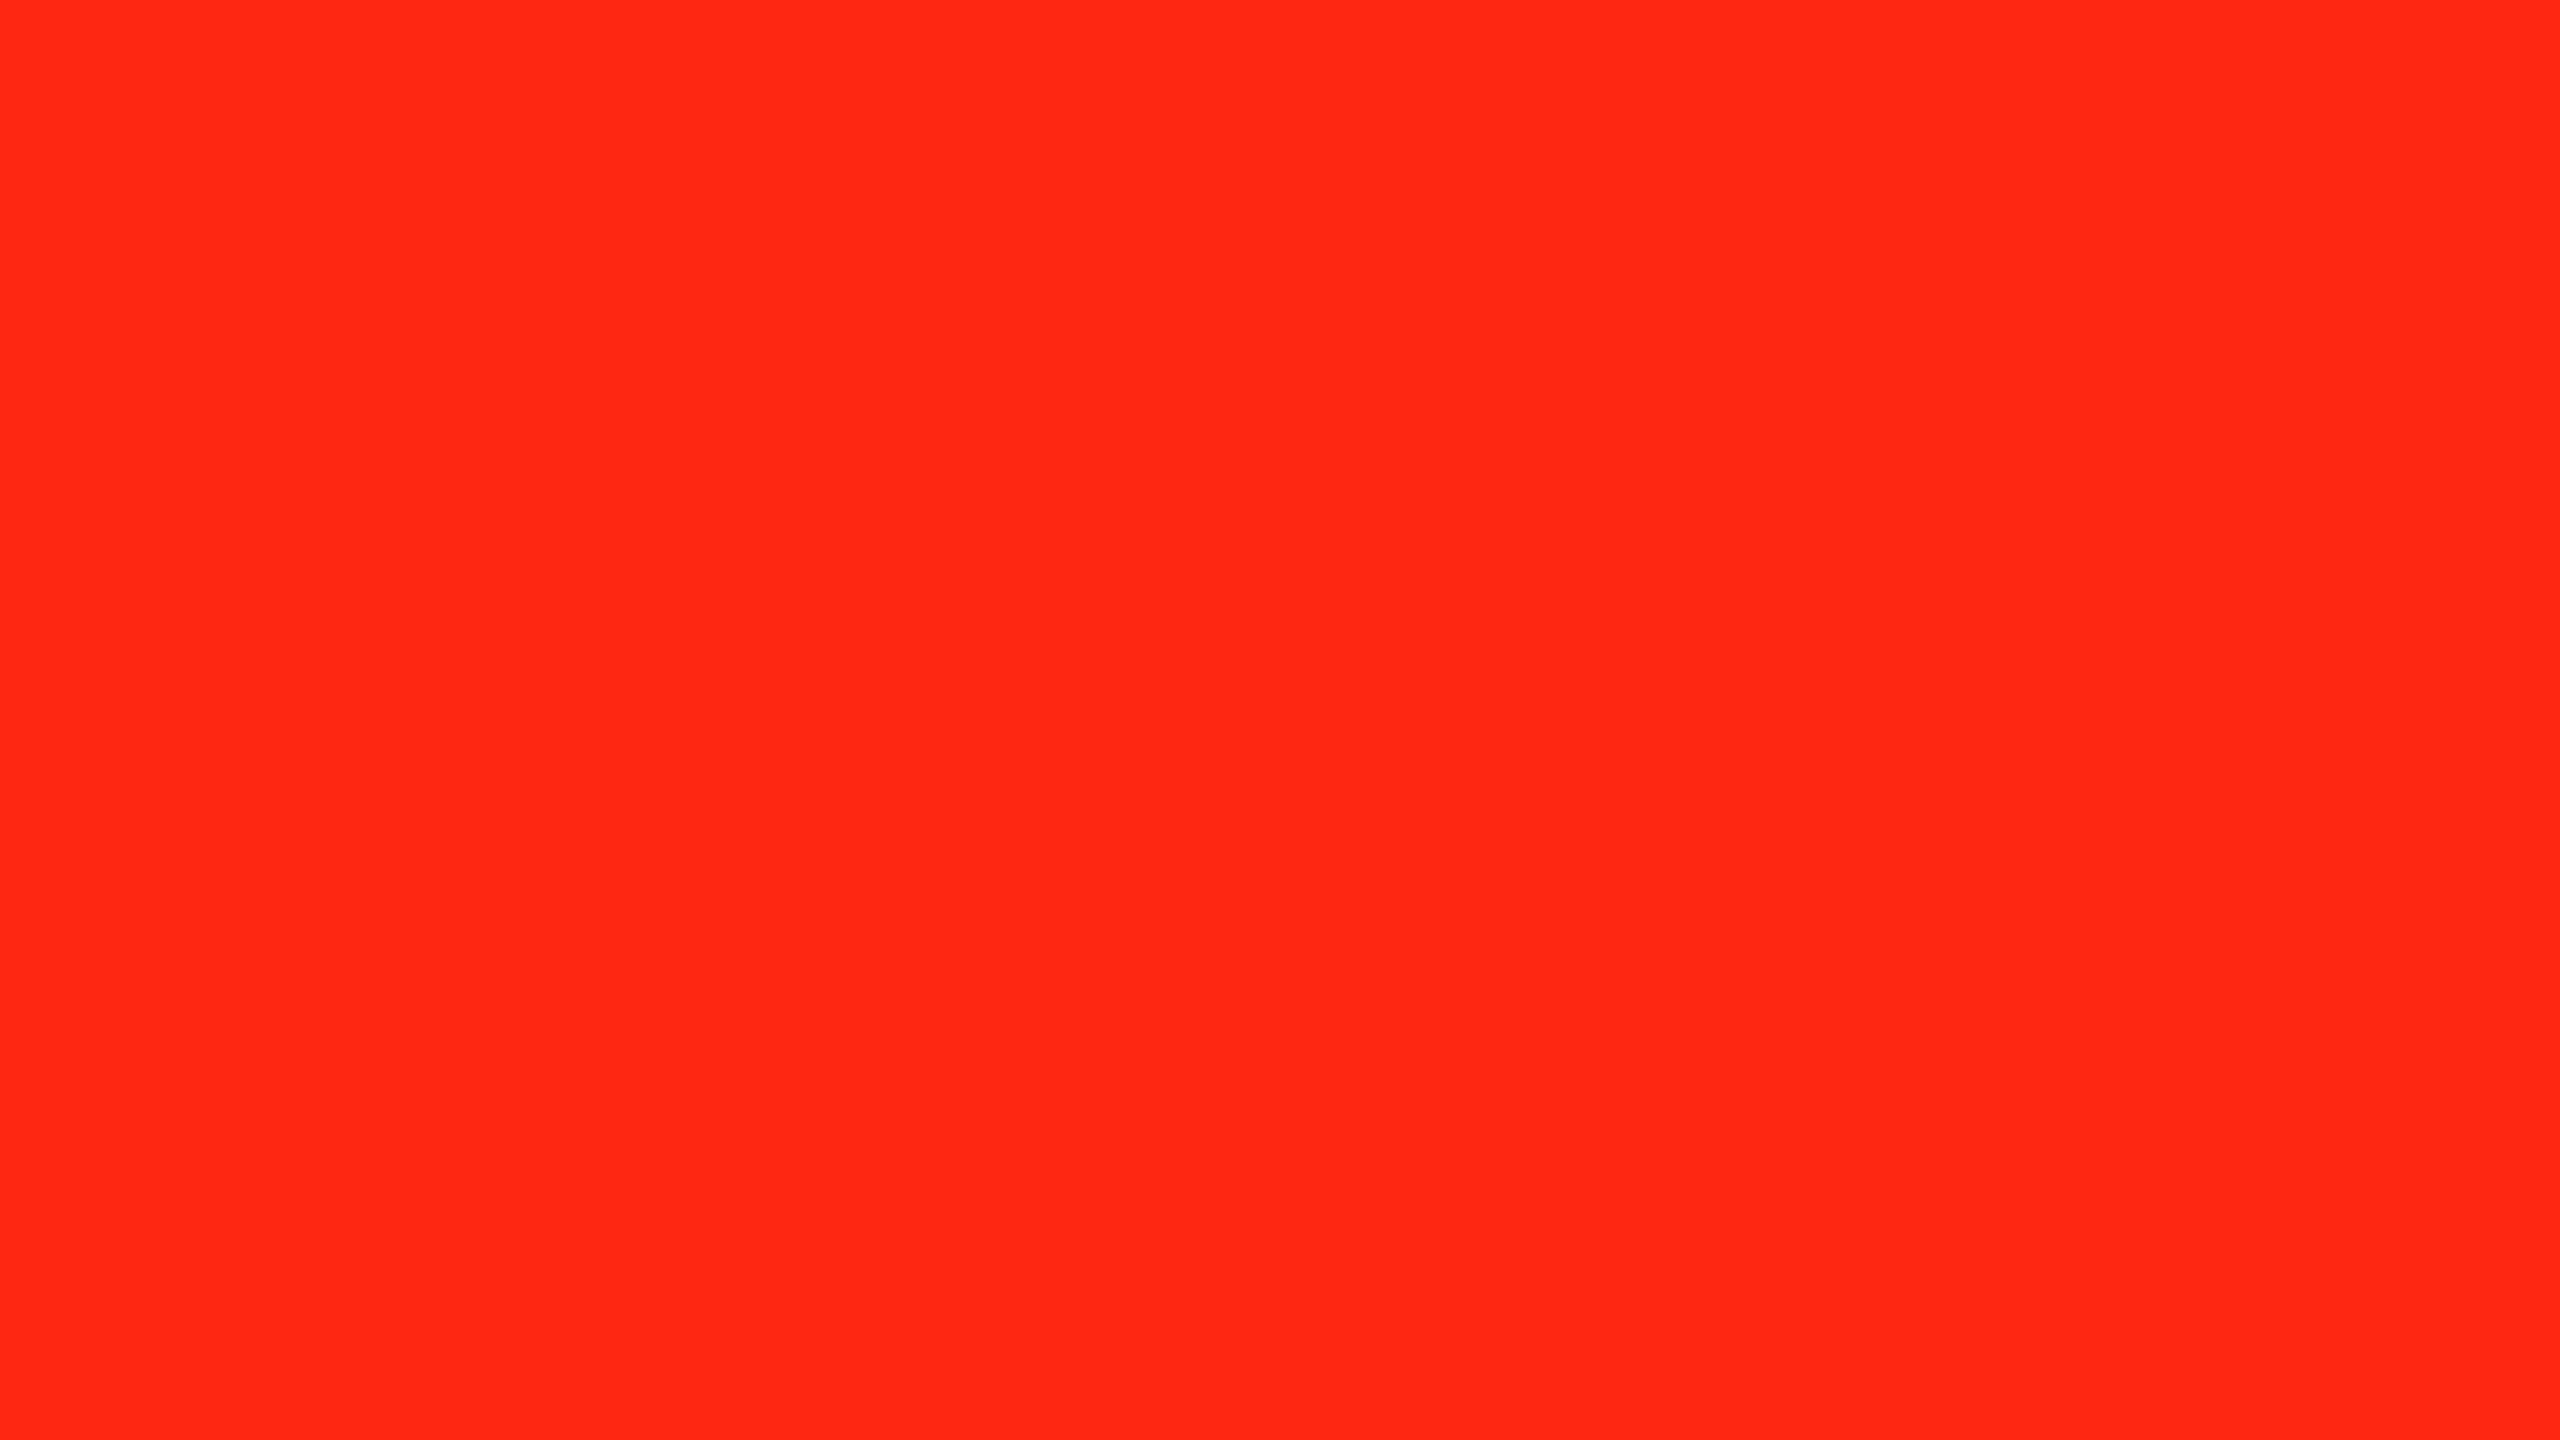 2560x1440 Red RYB Solid Color Background